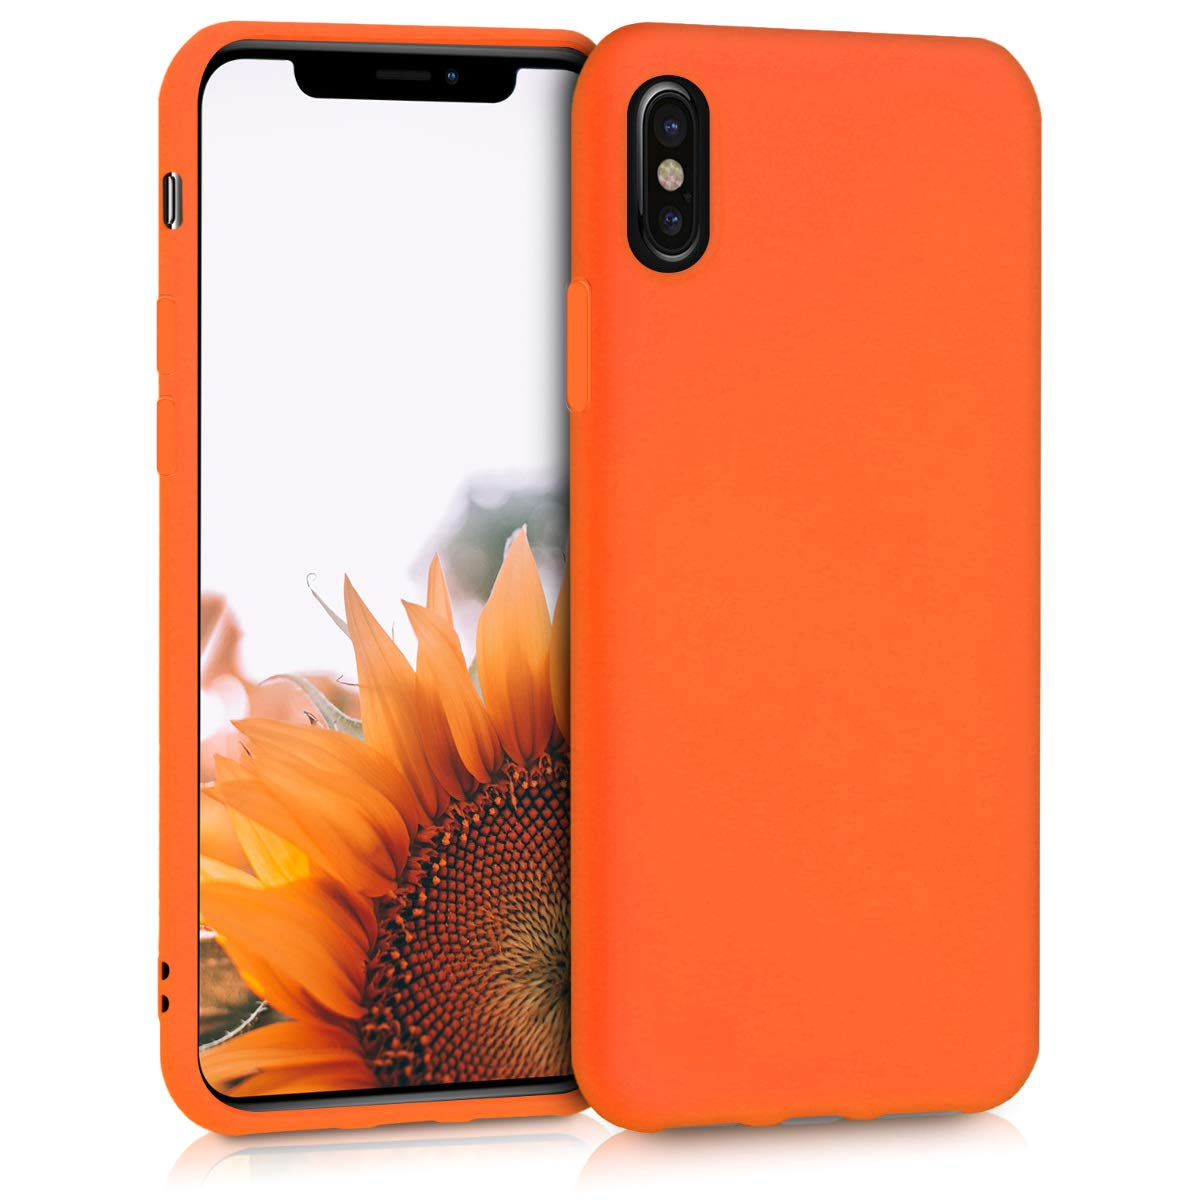 new products 4df85 9472e kwmobile TPU Silicone Case Compatible with Apple iPhone X - Soft Flexible  Protective Phone Cover - Neon Orange